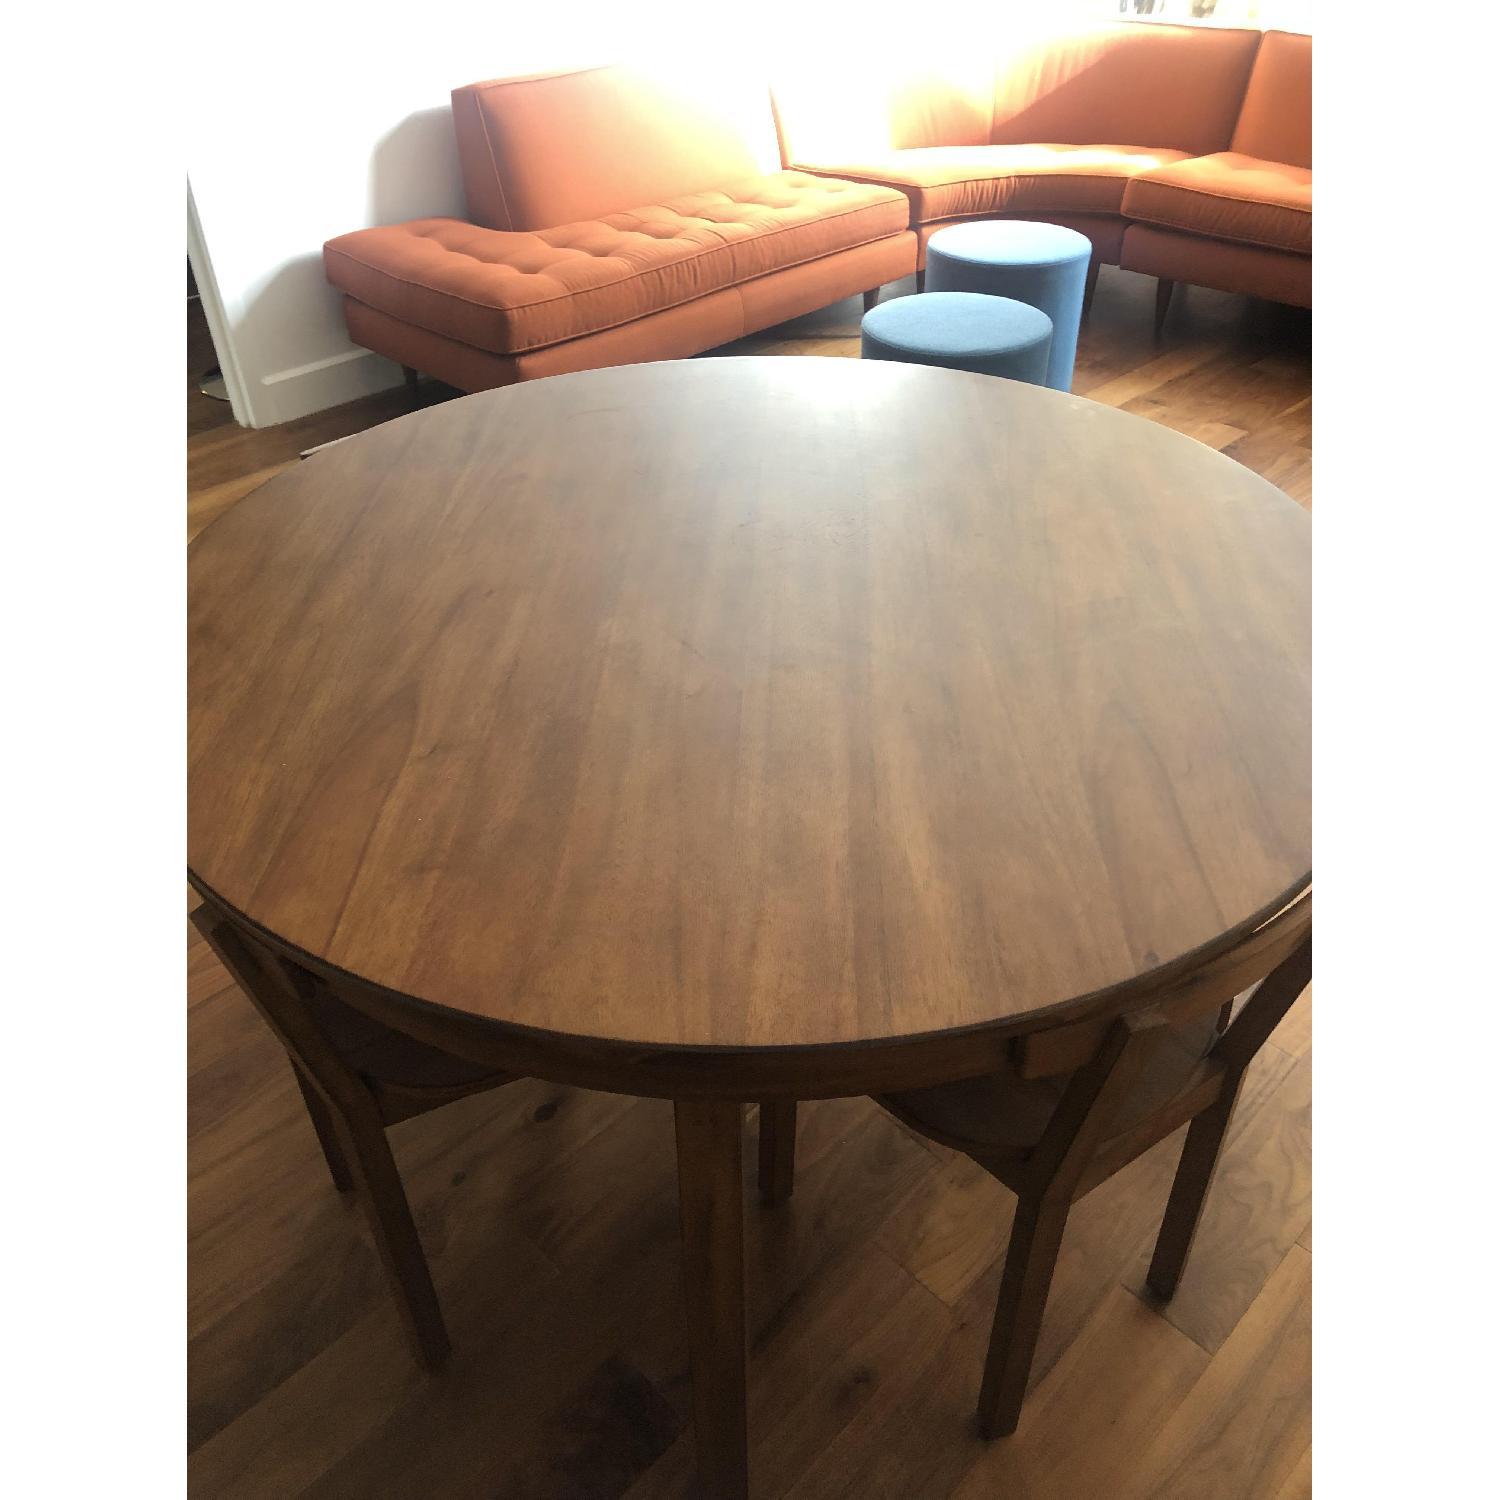 CB2 Claremont Round Wood Dining Table-0